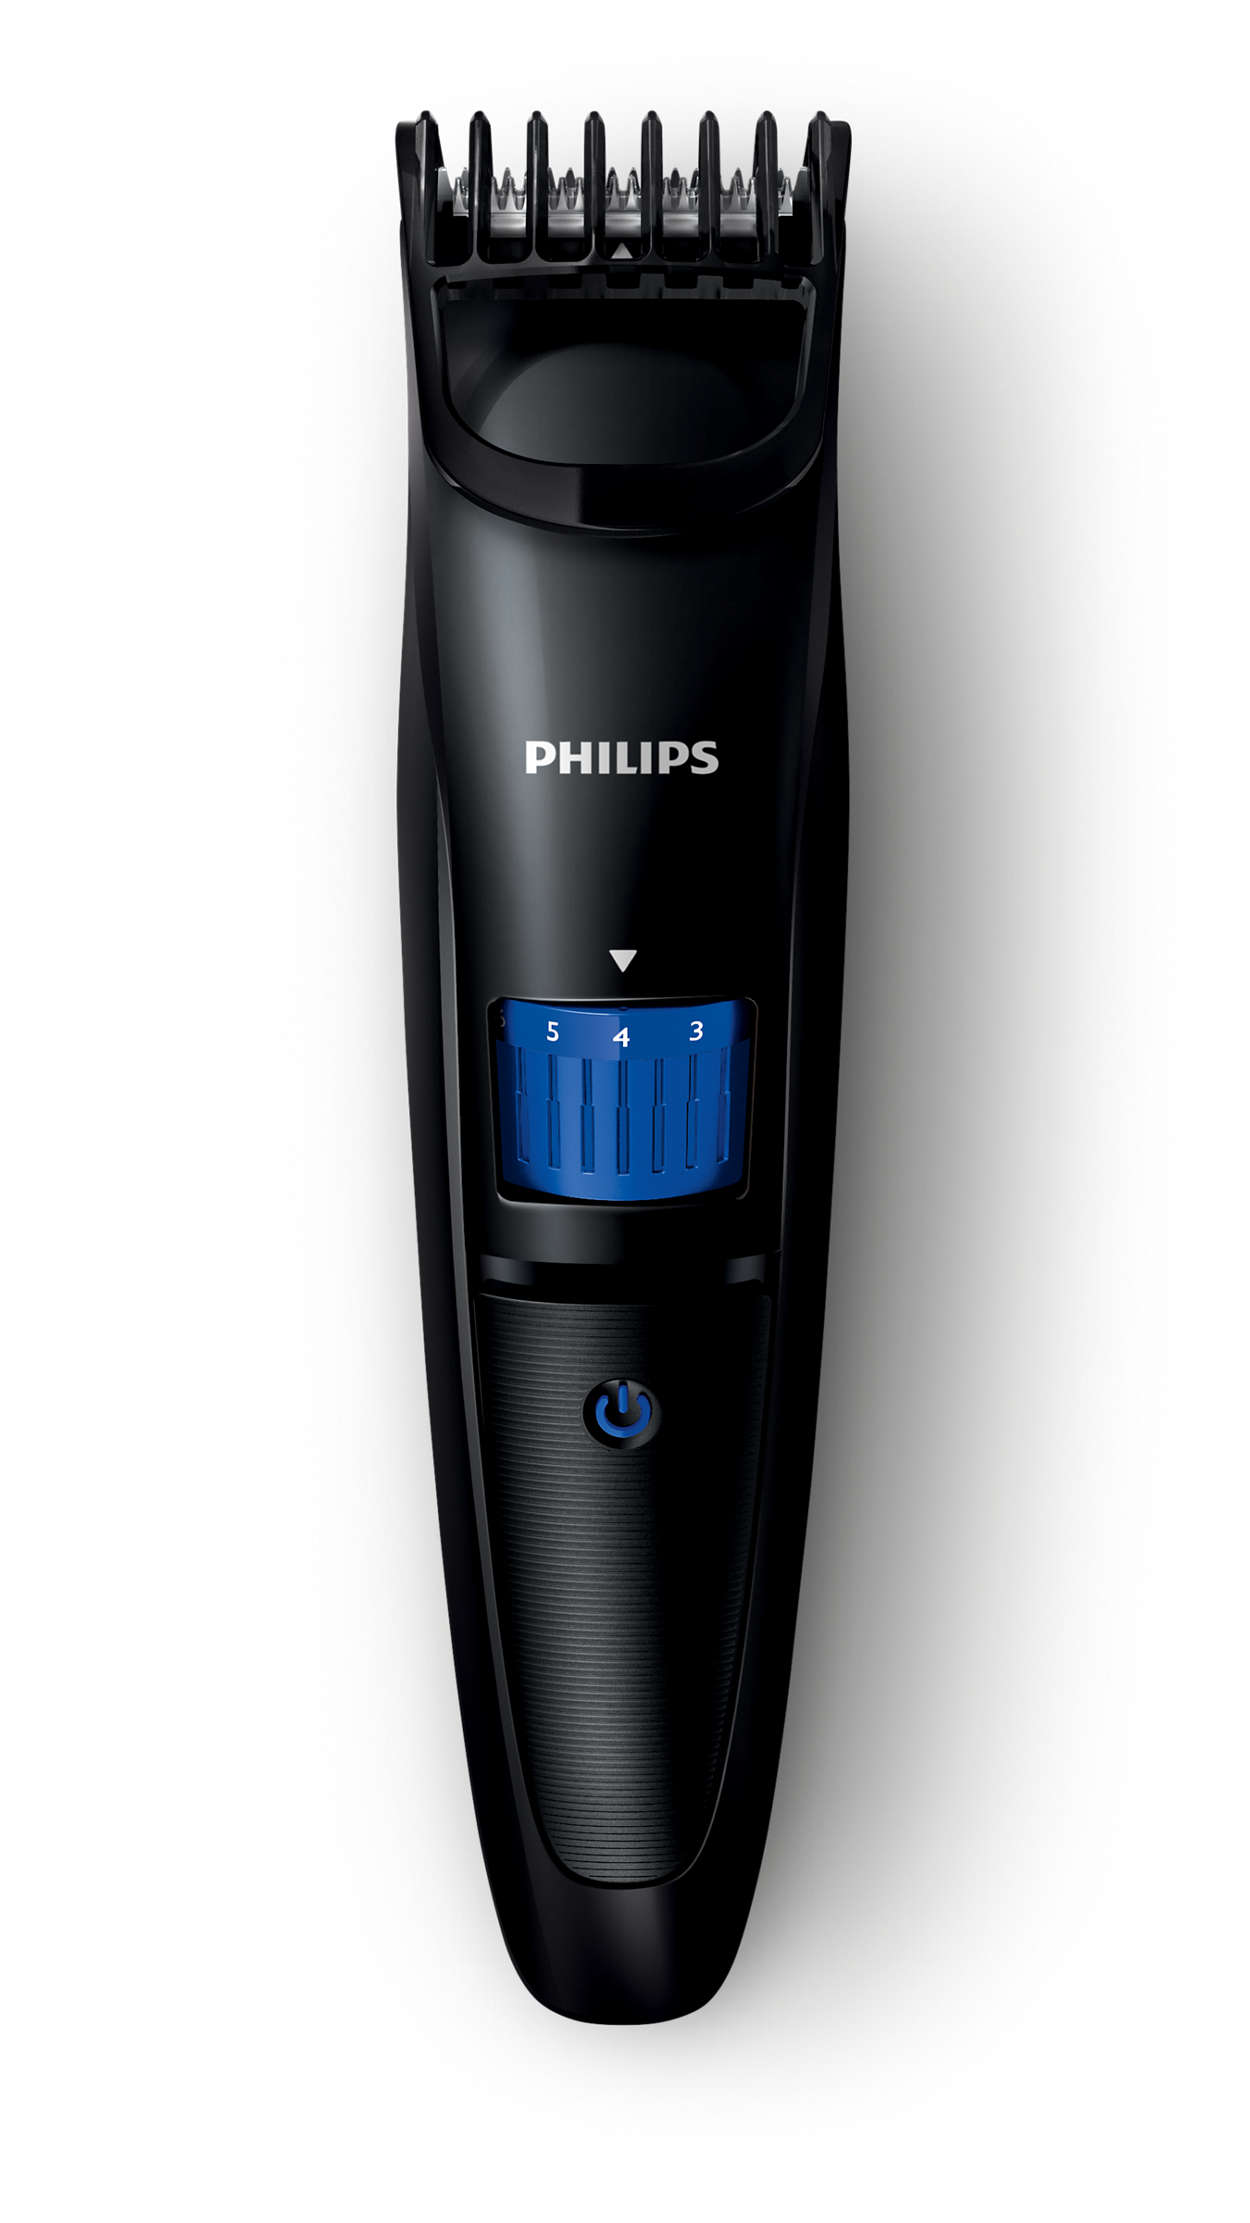 beardtrimmer series 3000 beard trimmer qt4000 15 philips. Black Bedroom Furniture Sets. Home Design Ideas